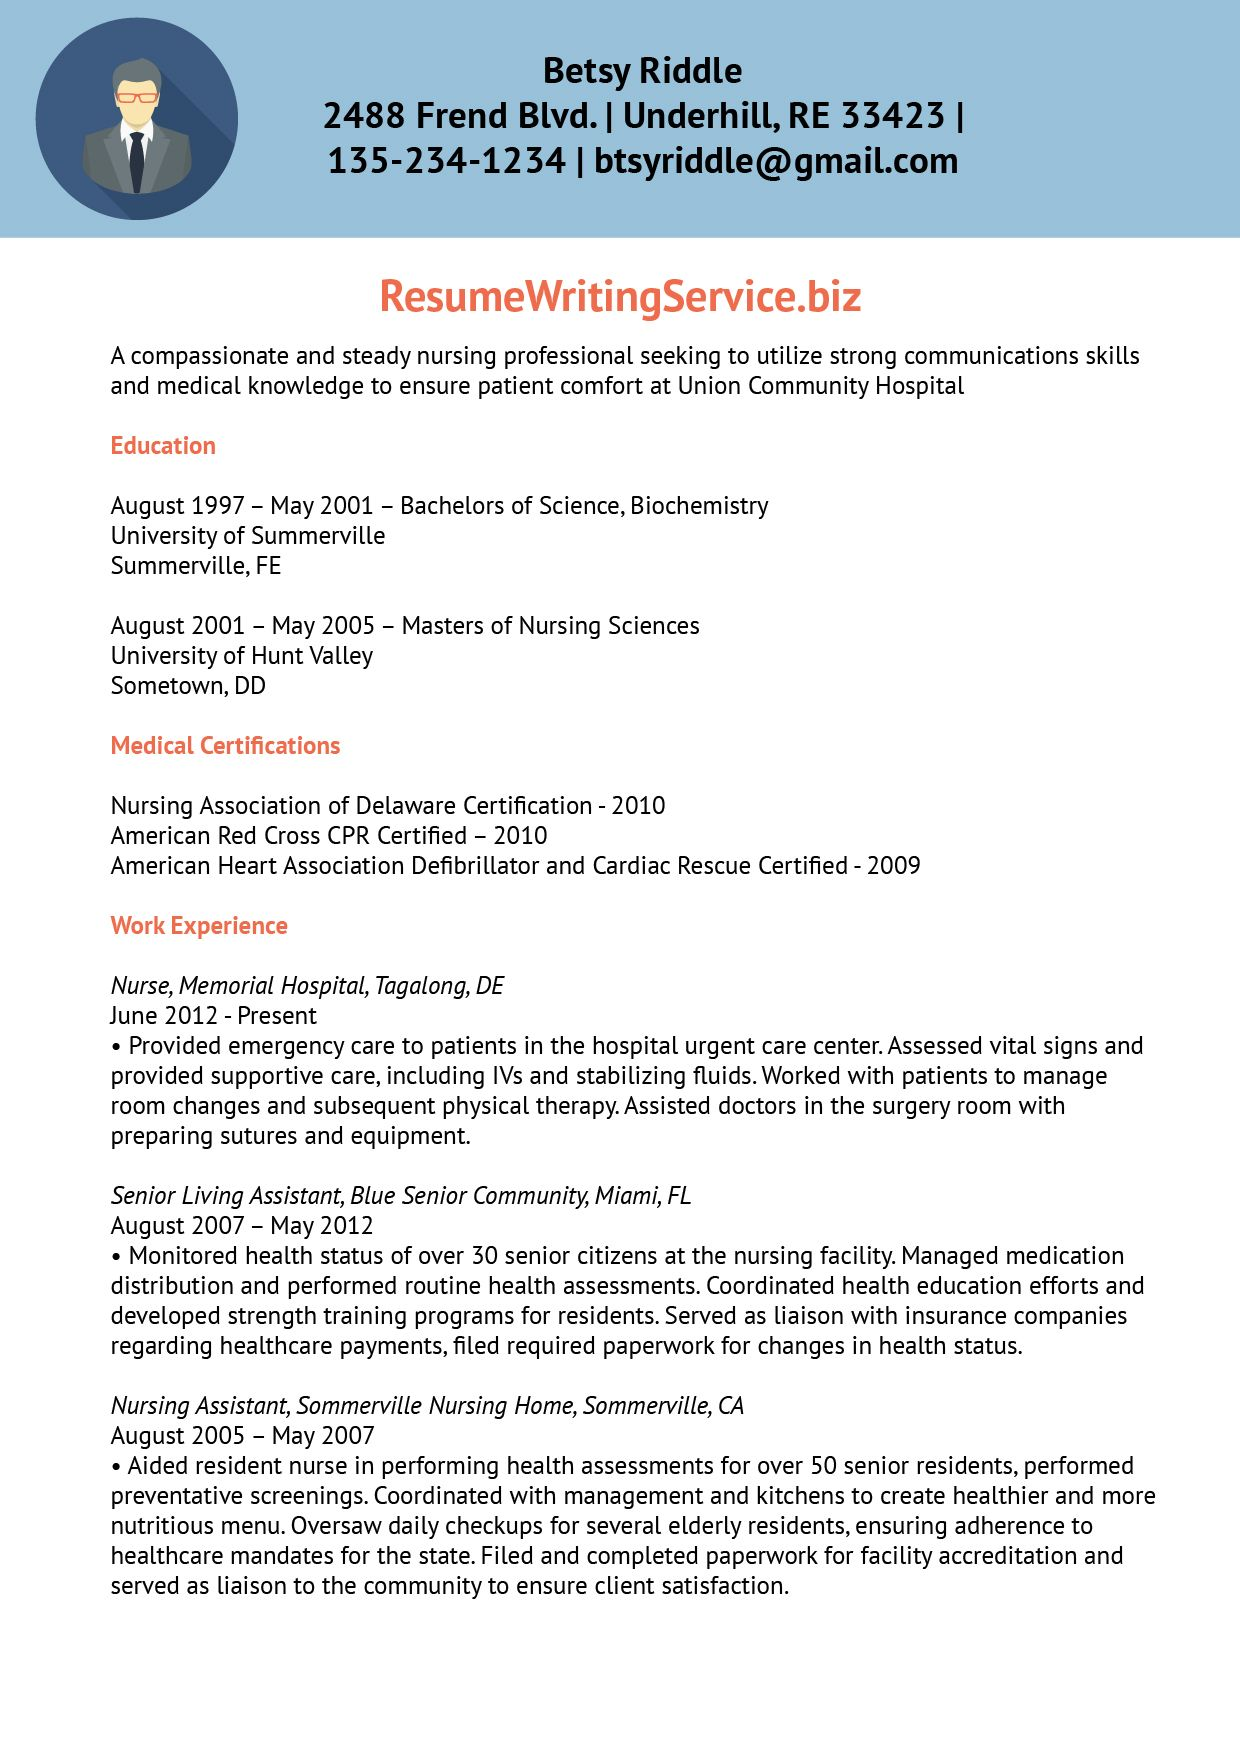 nurse resume sample nursing writing services best terms for customer service example Resume Best Nursing Resume Writing Services